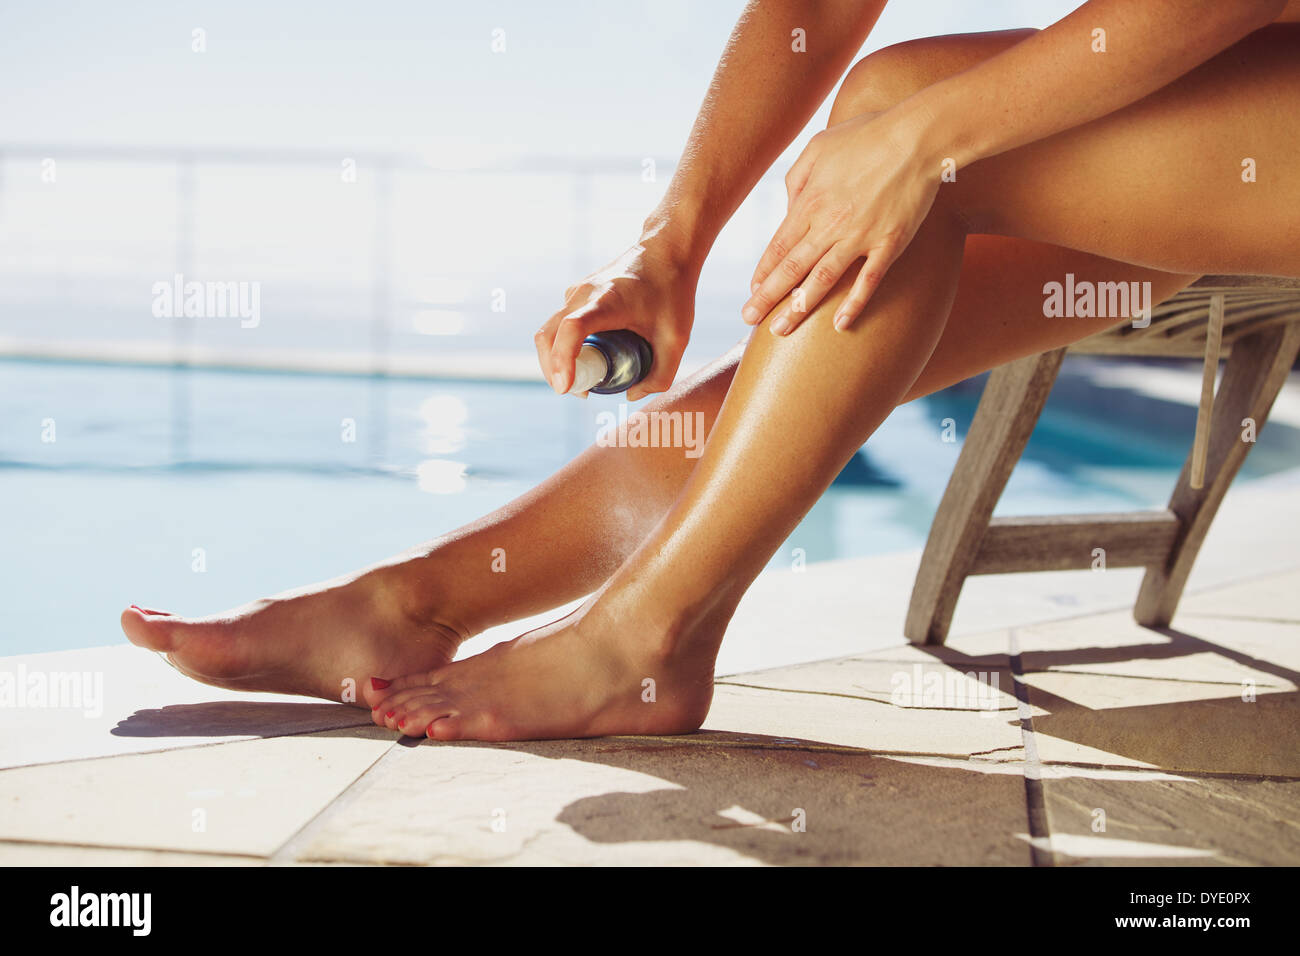 Woman sitting on deck chair by the swimming pool spraying suntan lotion onto her legs - Stock Image